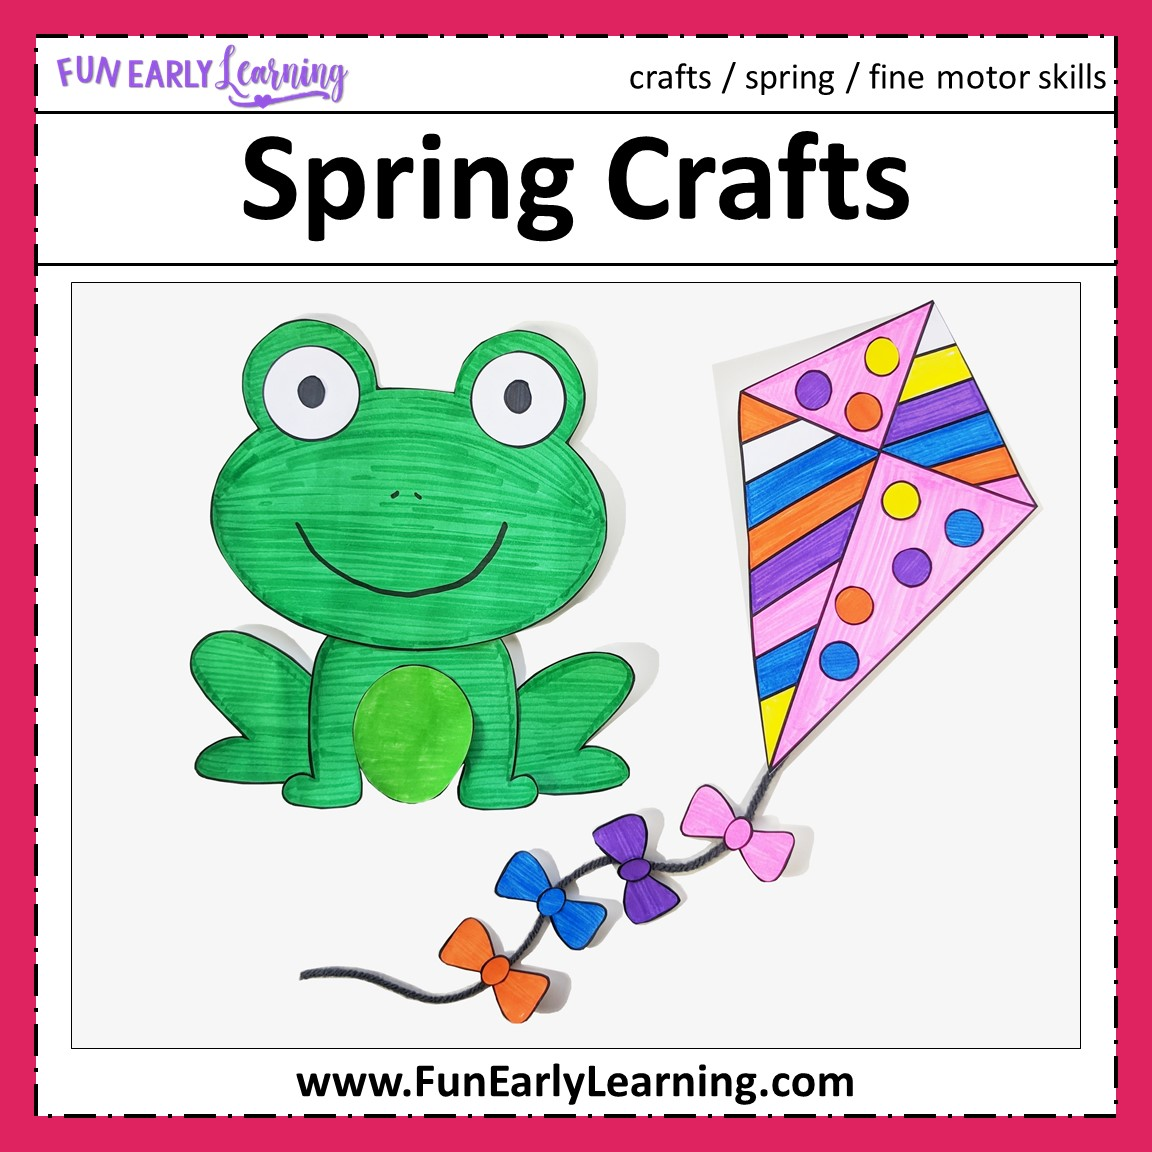 photograph relating to Printable Kid Crafts identify Spring Crafts - Flower Pot, Frog, Kite, and Umbrella with